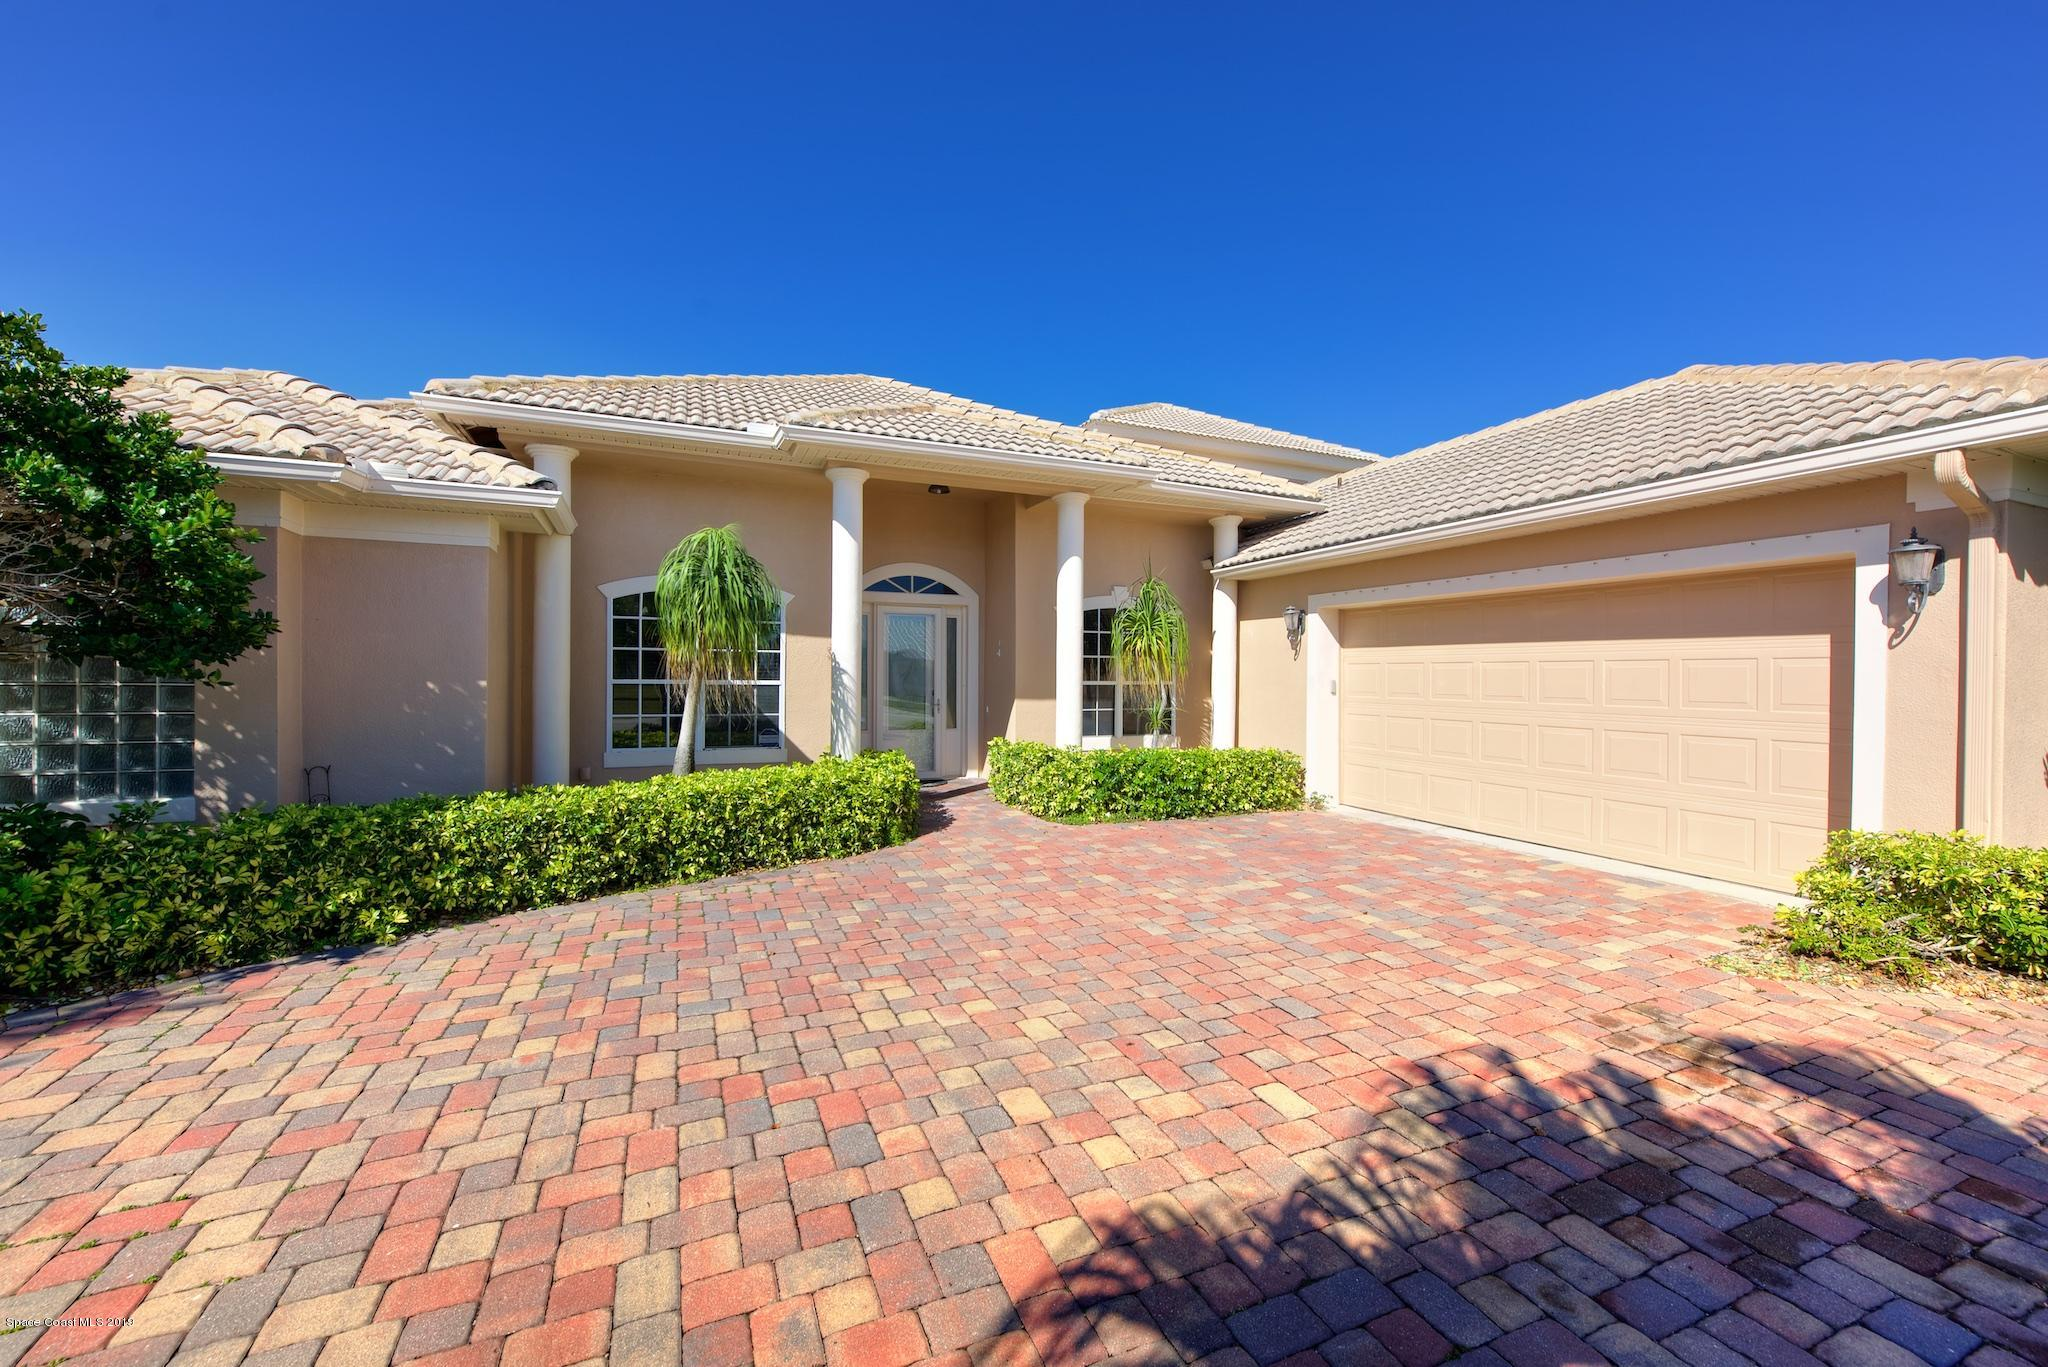 House for Sale at 13 Cove View 13 Cove View Cocoa Beach, Florida 32931 United States